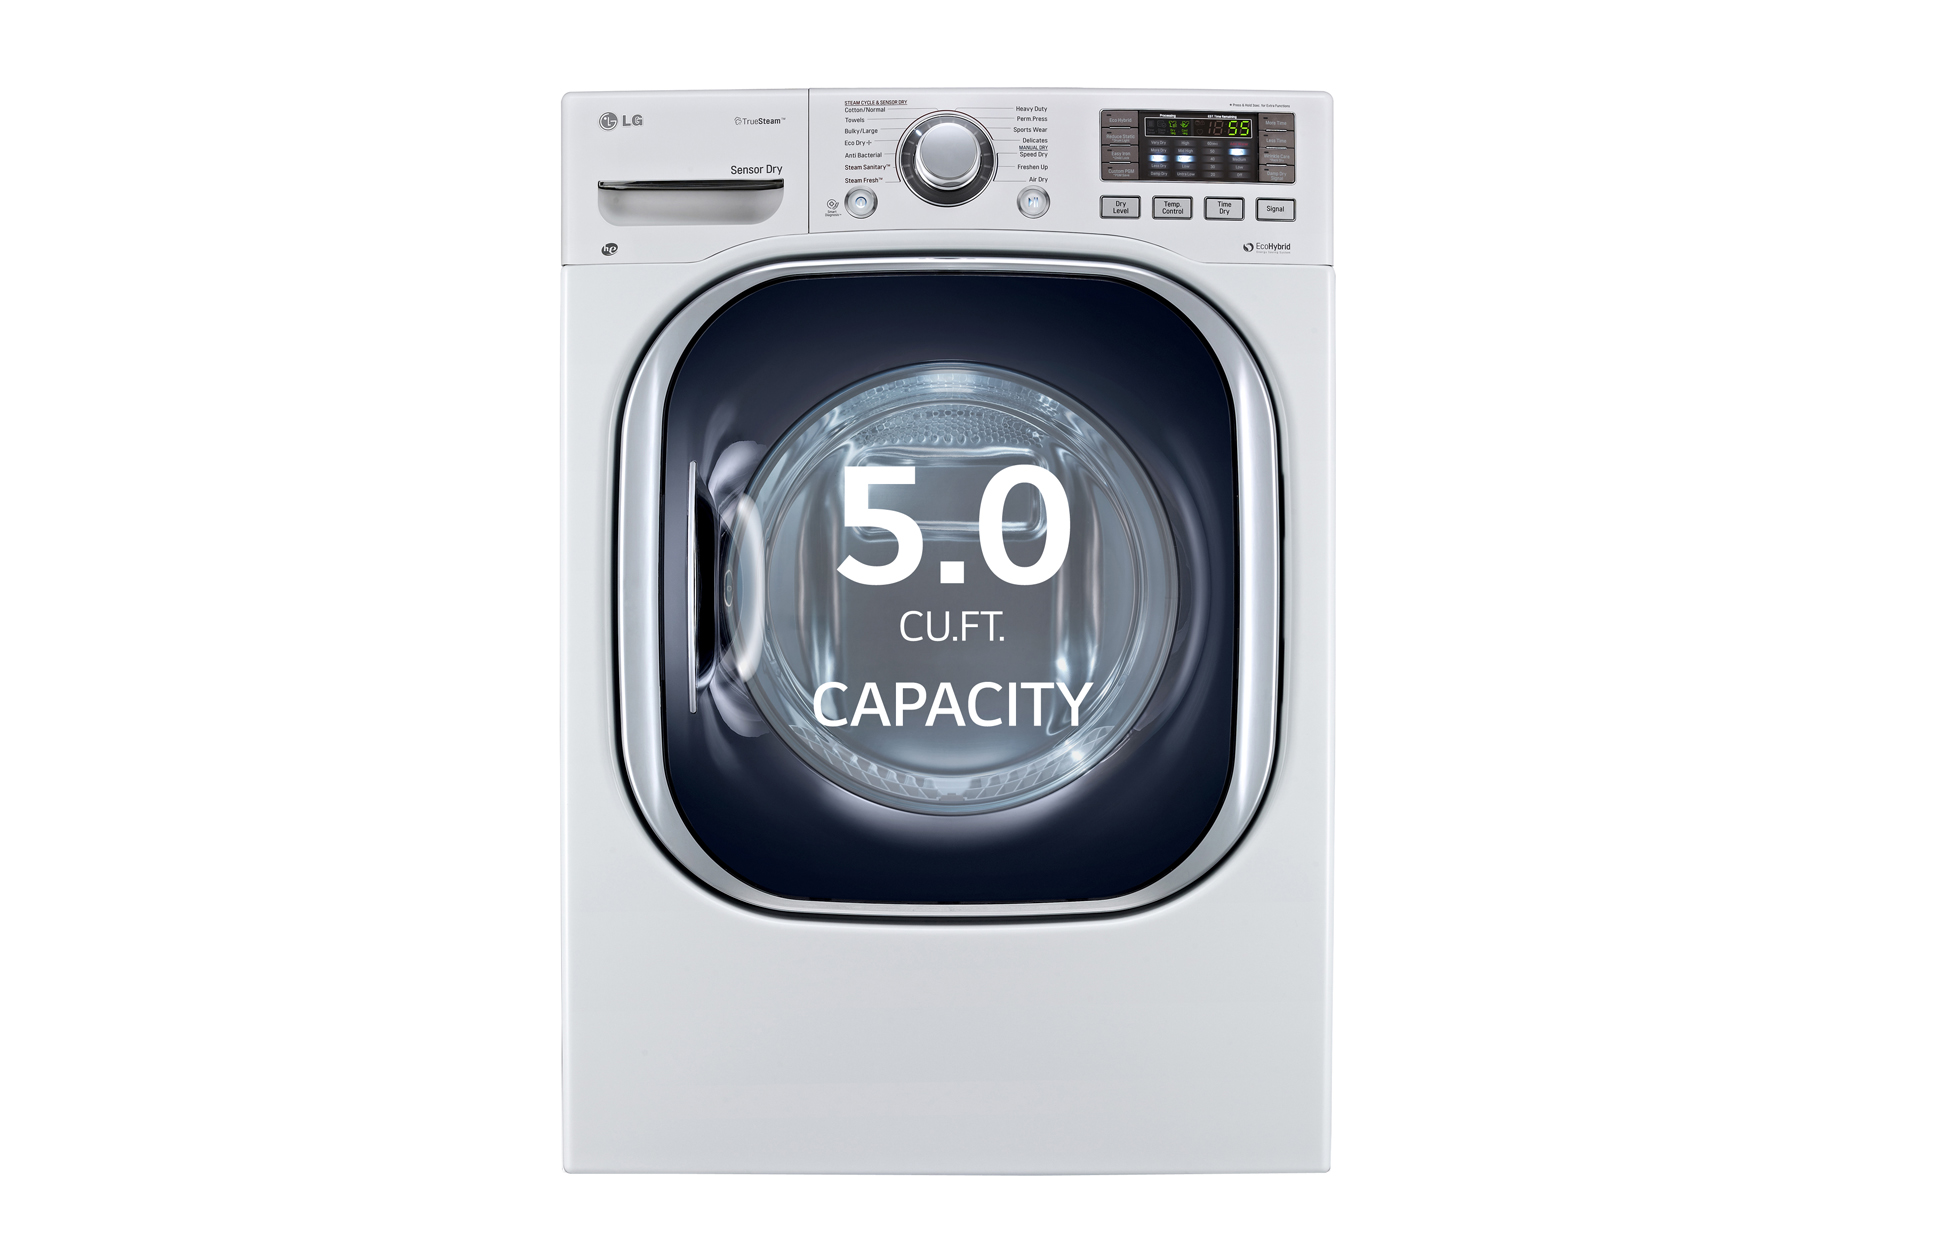 LG Electronics 5 0 cu ft Front Load All In e Electric Washer